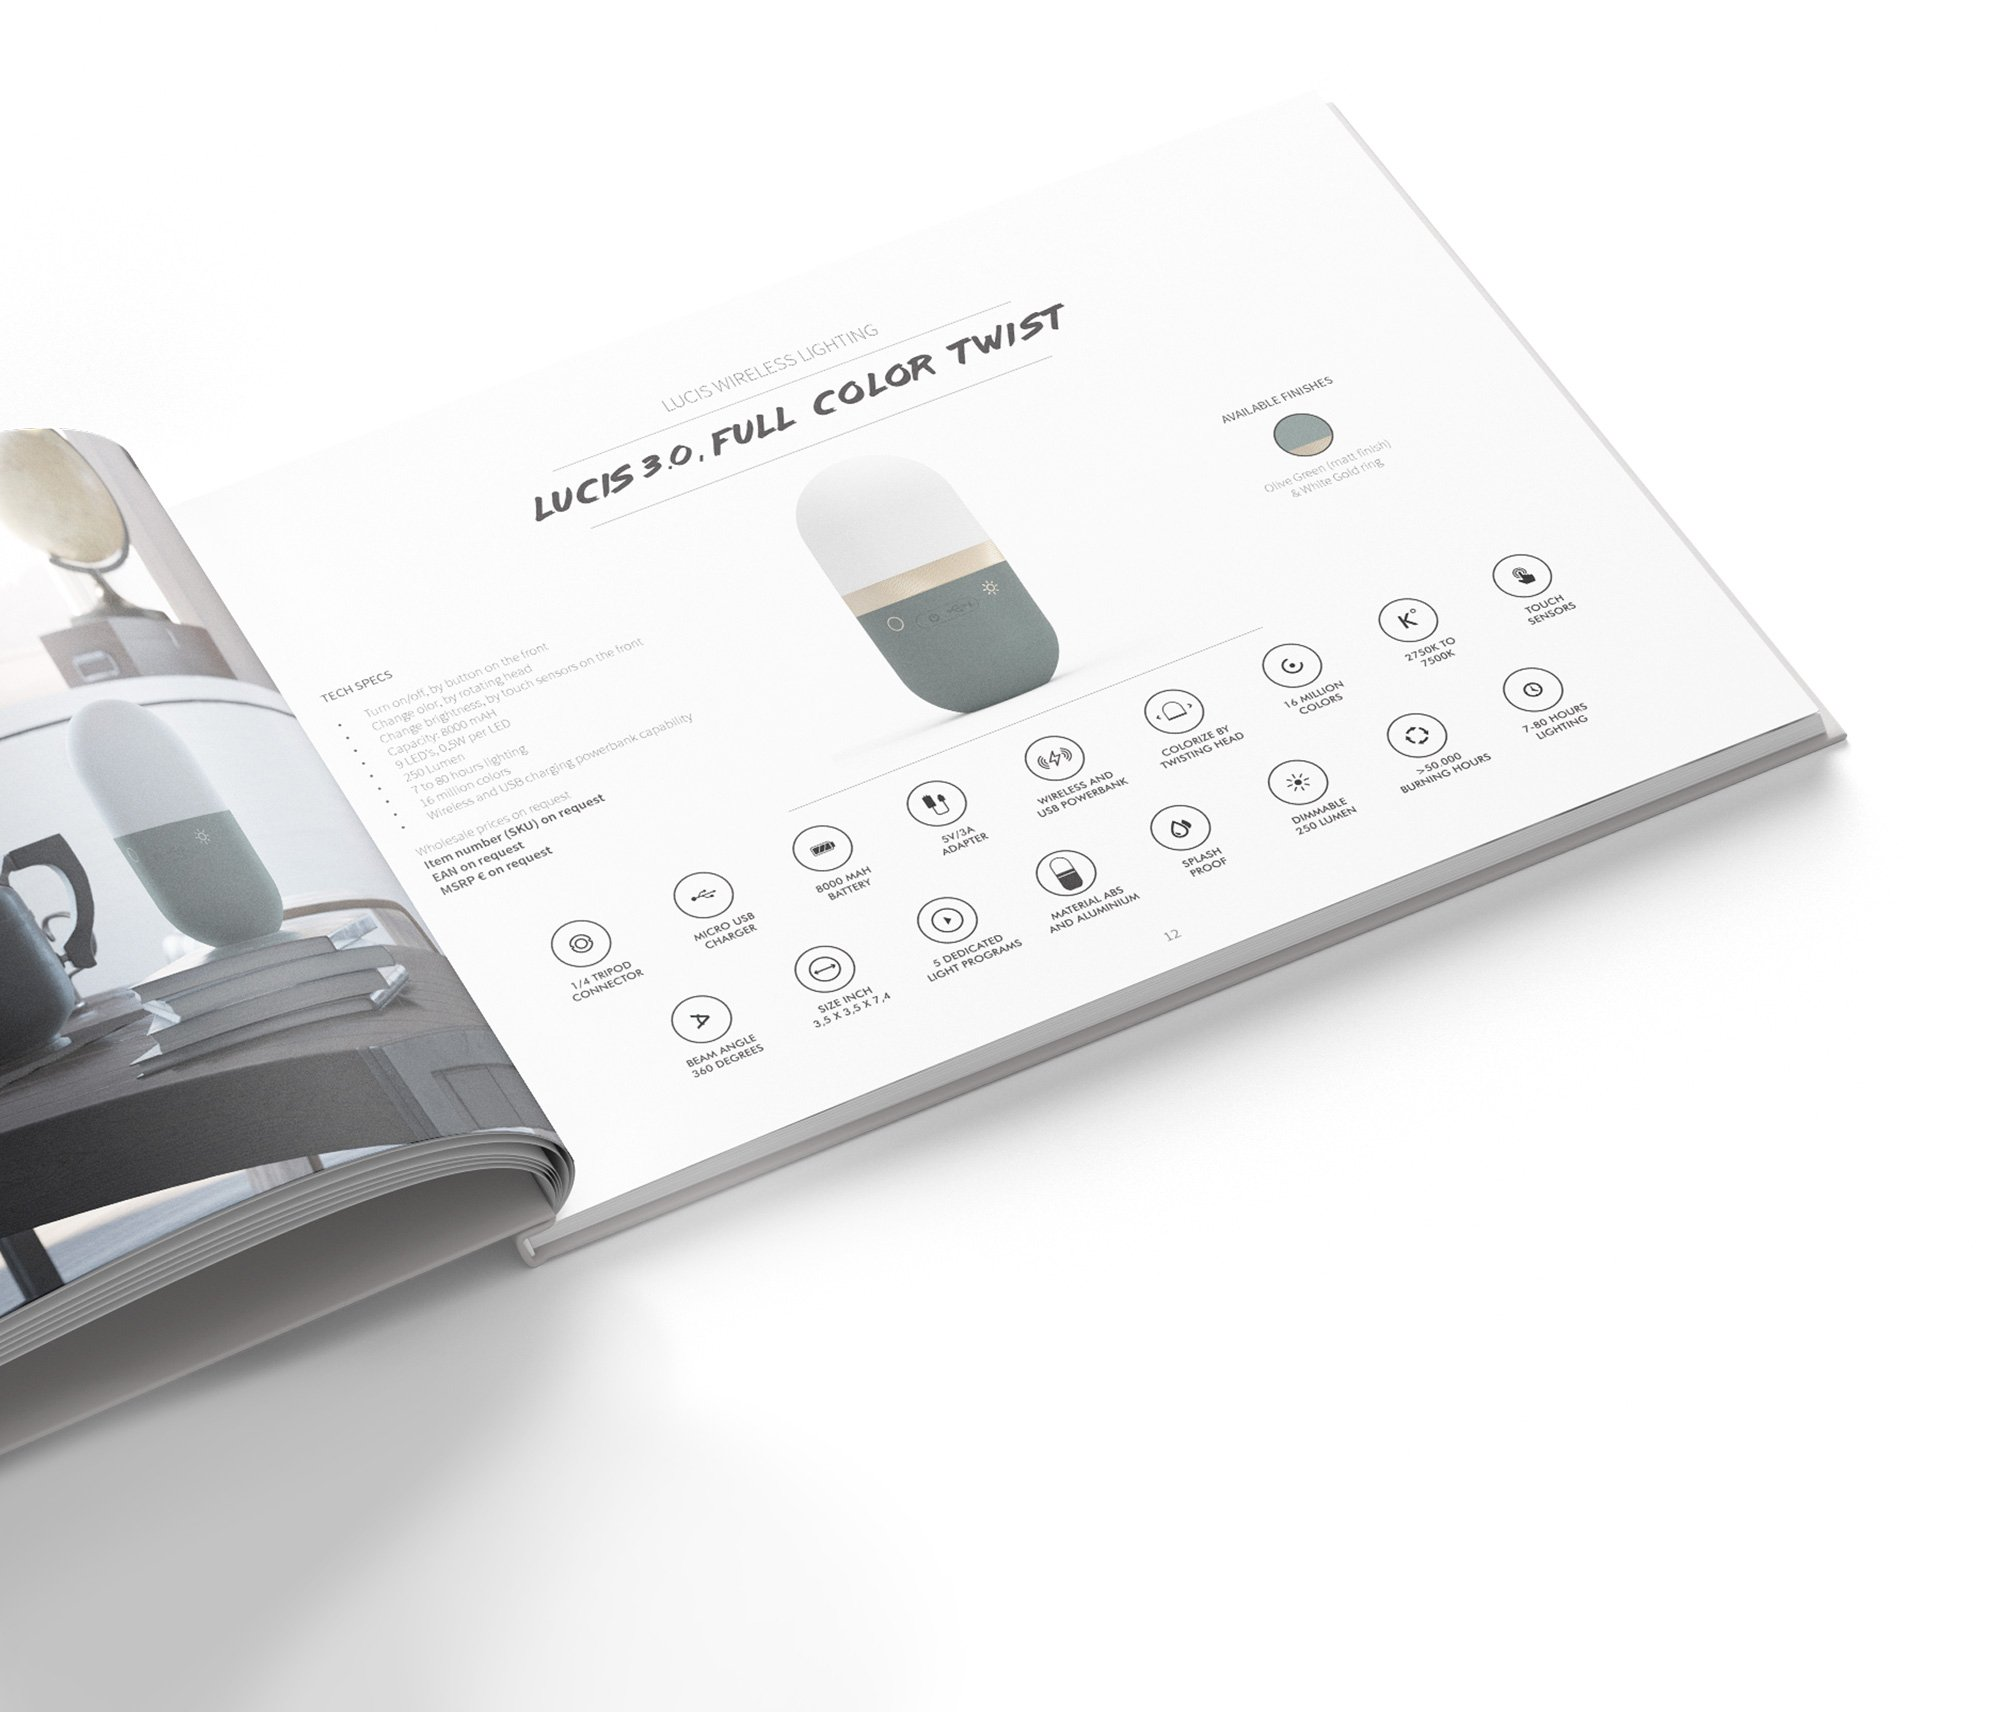 innovative-digital-amsterdam-webdesign-lucis-wireless-lighting-3.0-brochure